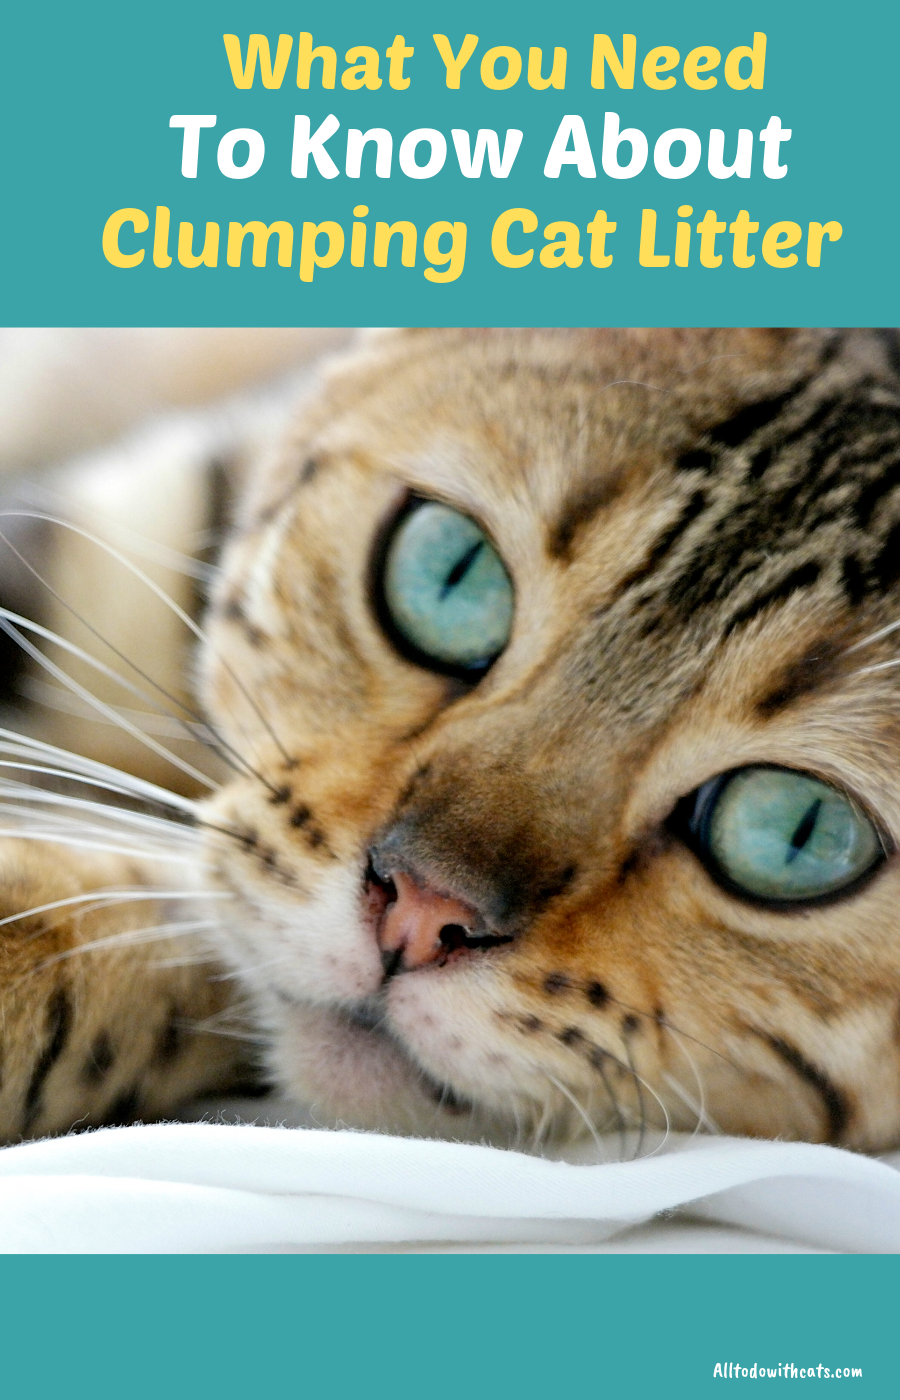 Is Clumping Cat Litter Safe And Does It Stop Odour All To Do With Cats Clumping Cat Litter Cat Litter Cats